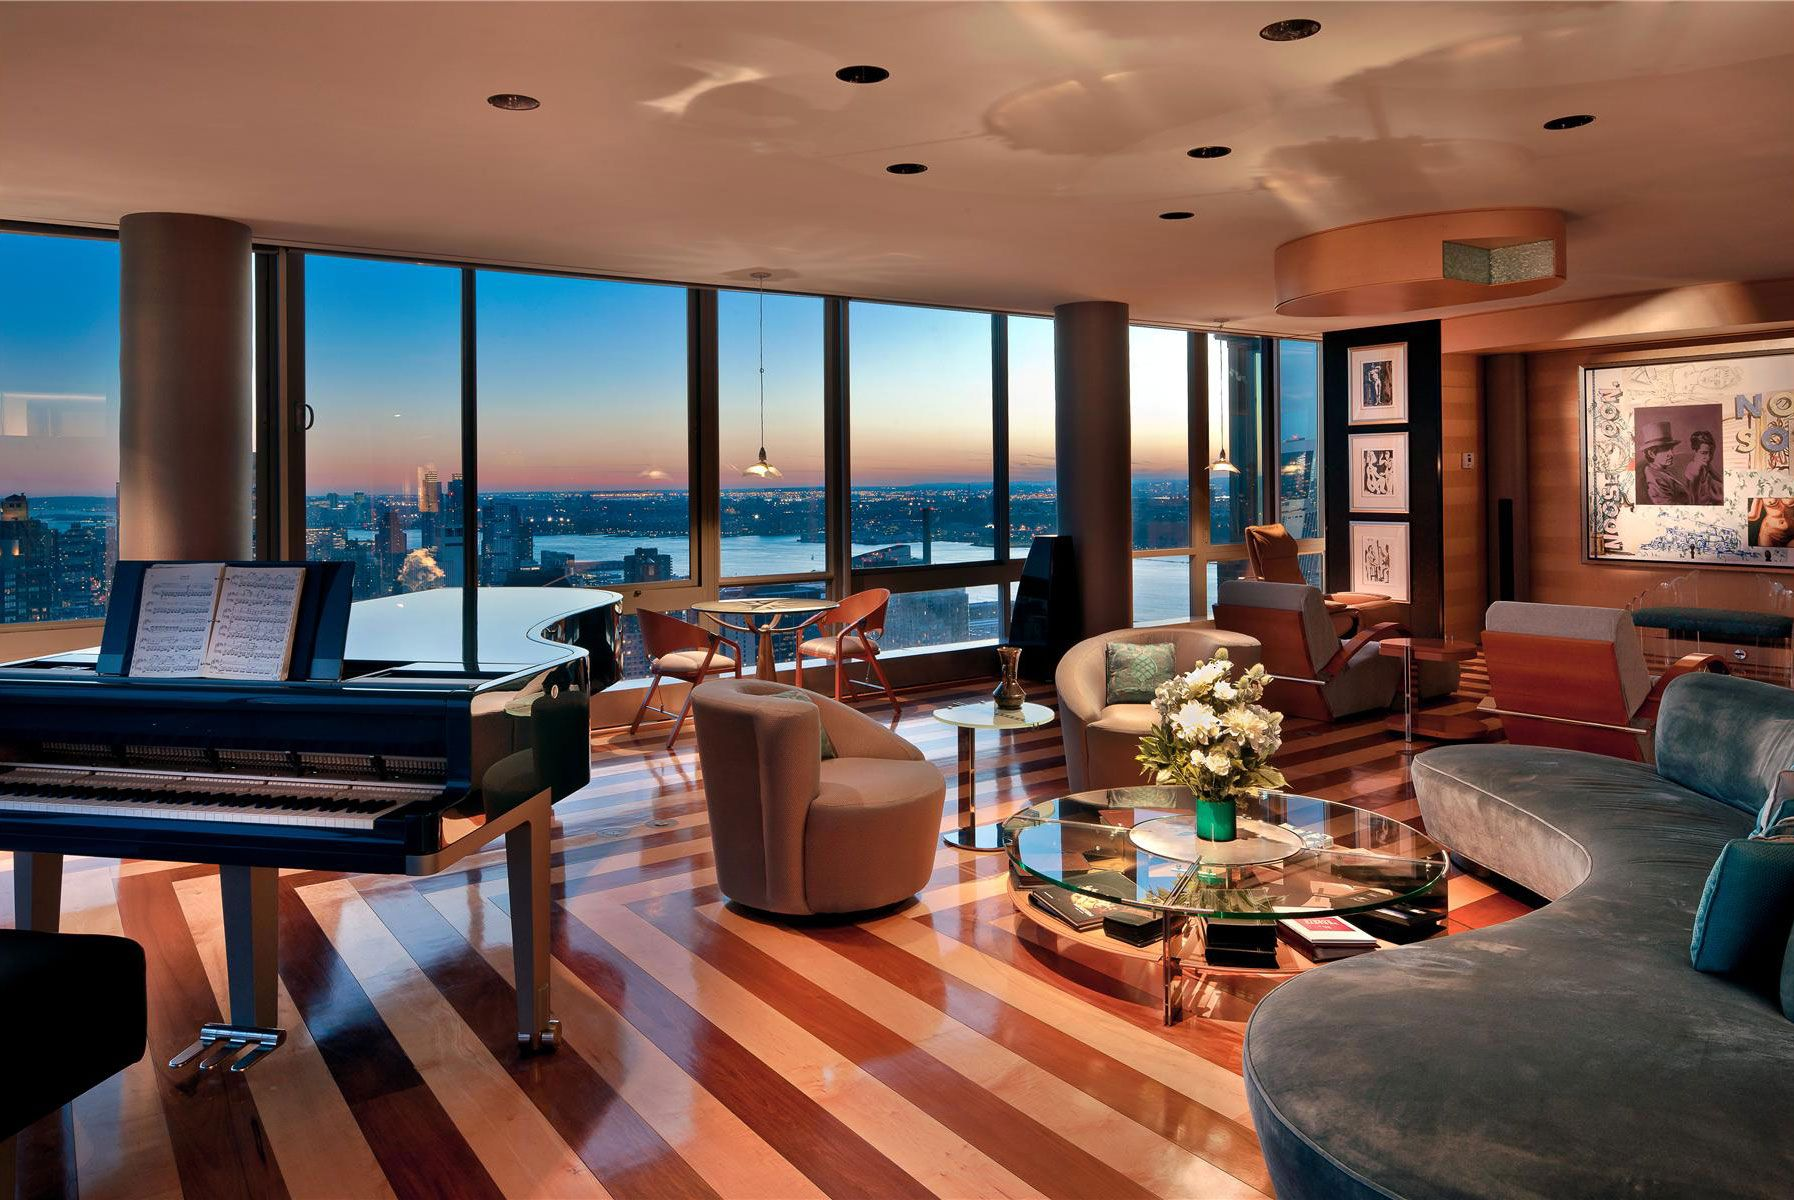 The gartner penthouse for sale in new york city for Manhattan house apartments for sale